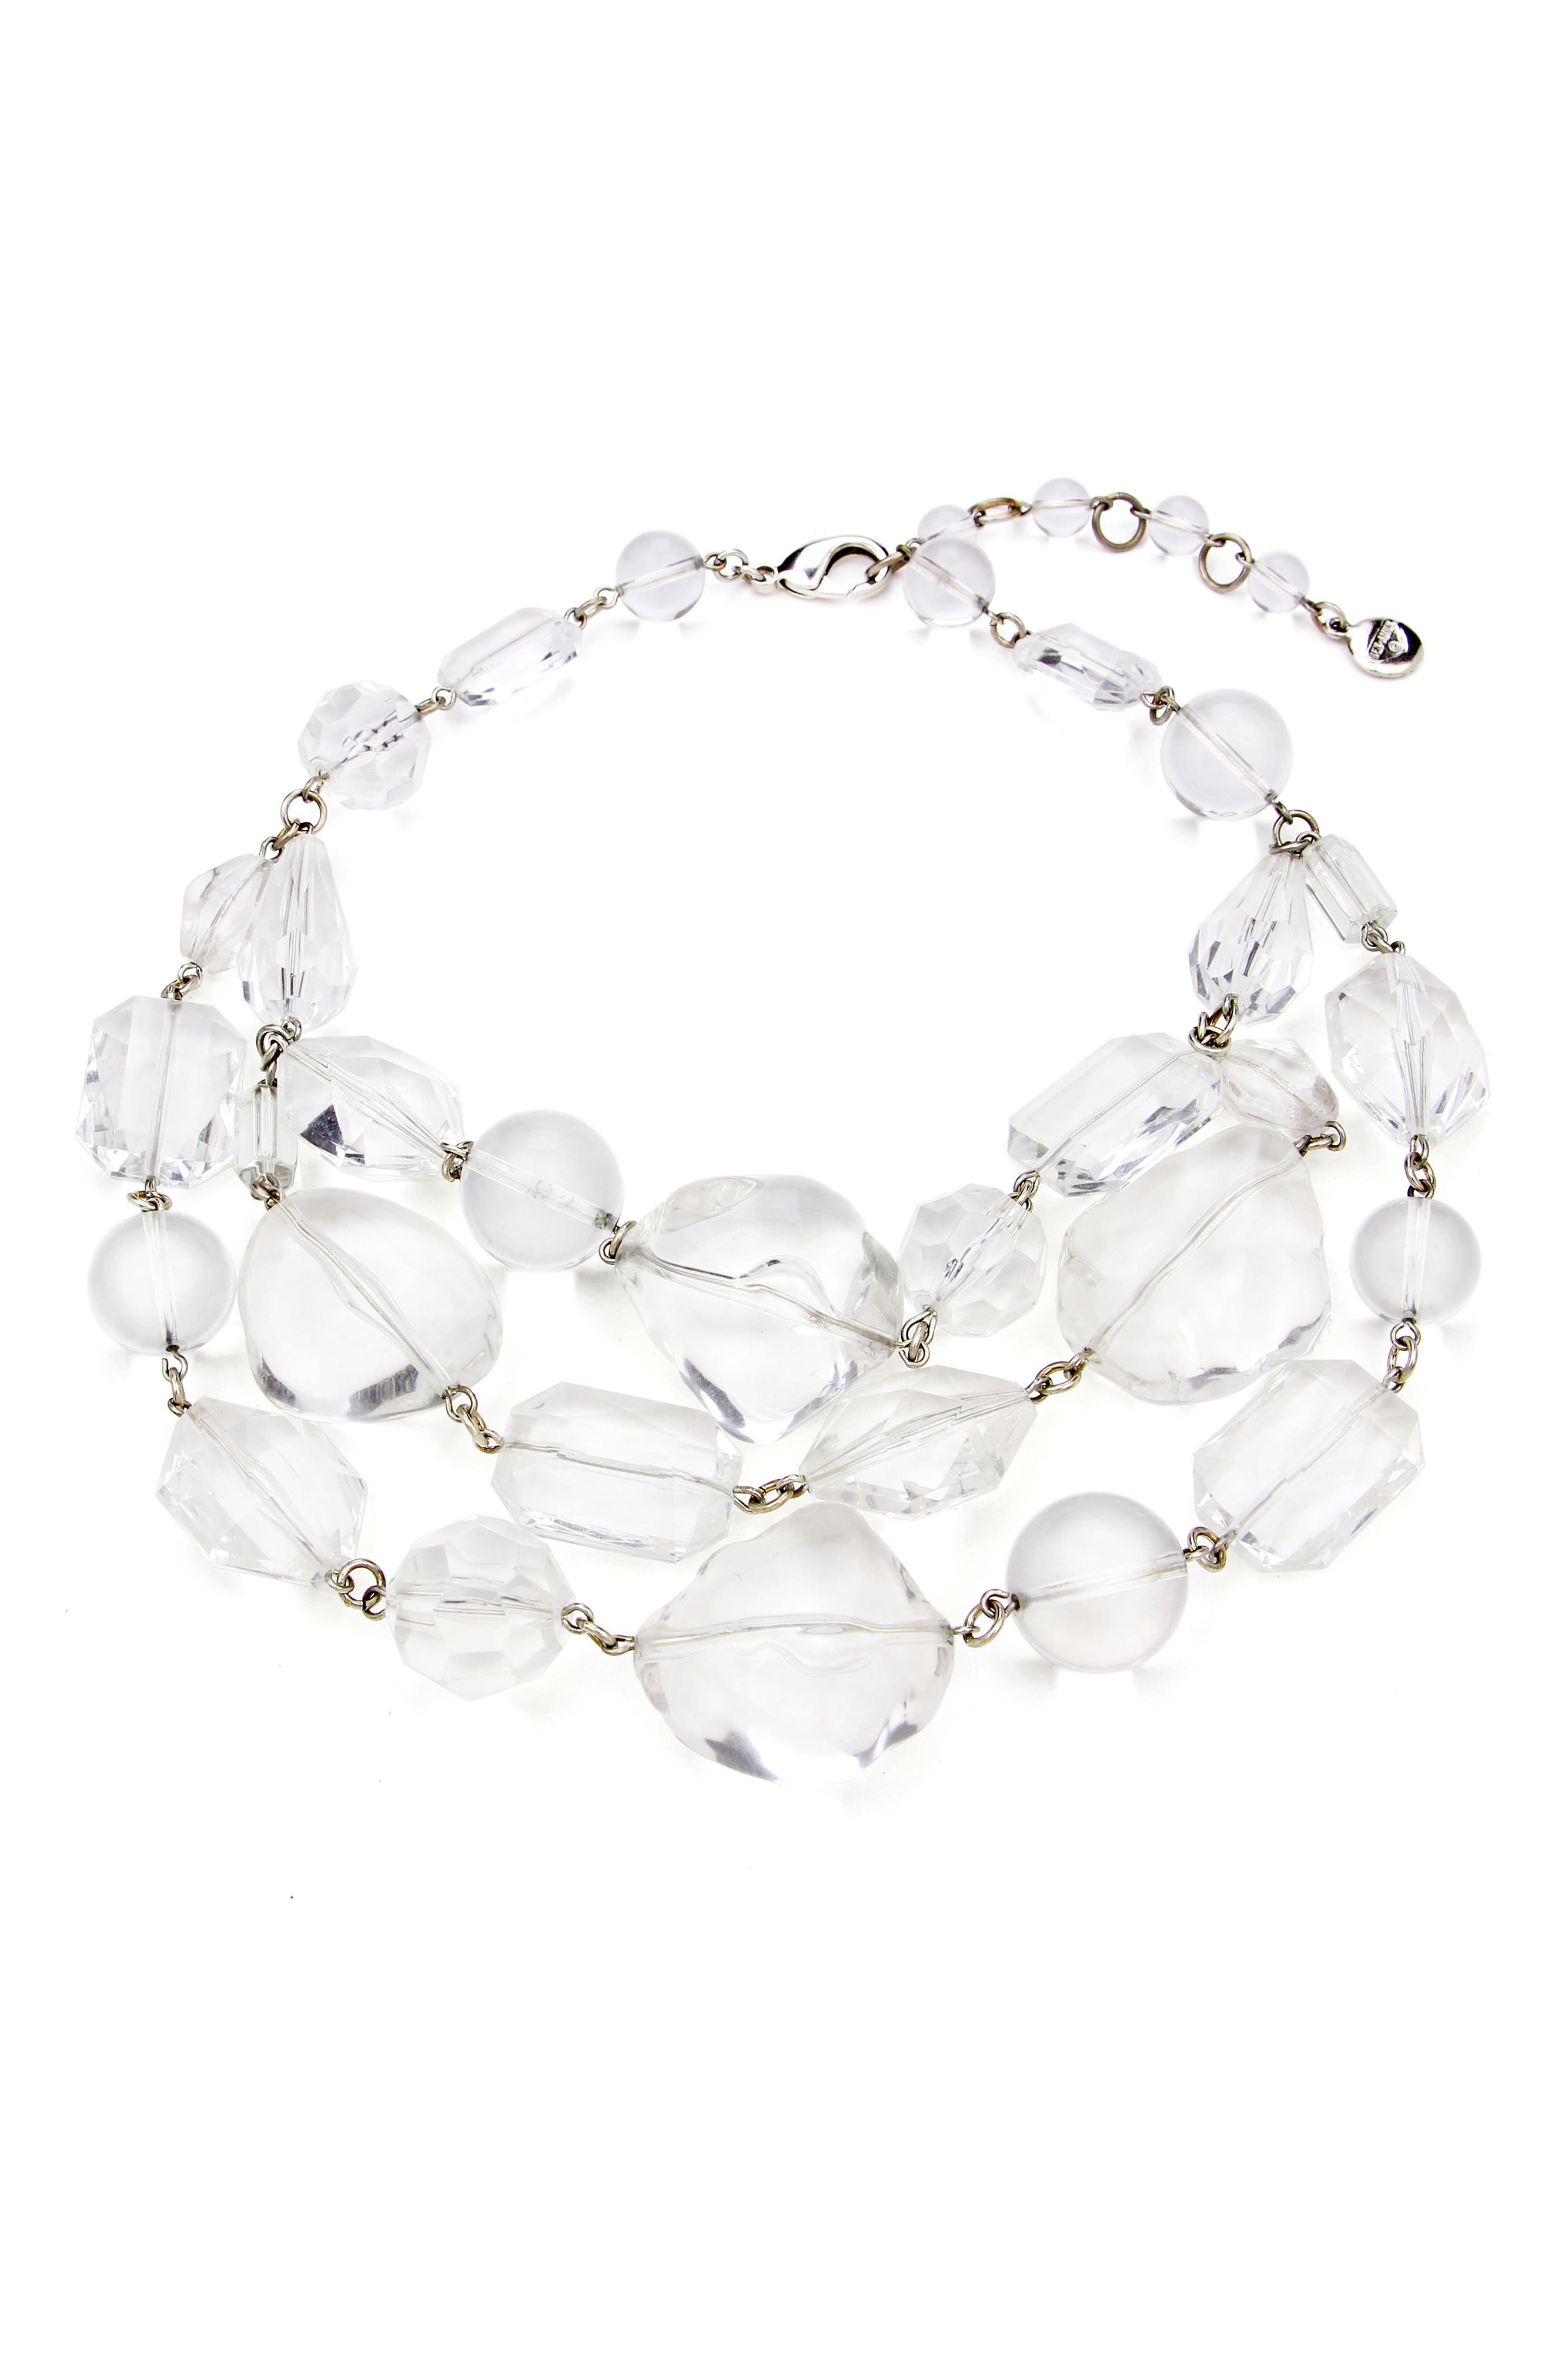 Multilayer Geometric Necklace,                             Main thumbnail 1, color,                             Clear/ Silver